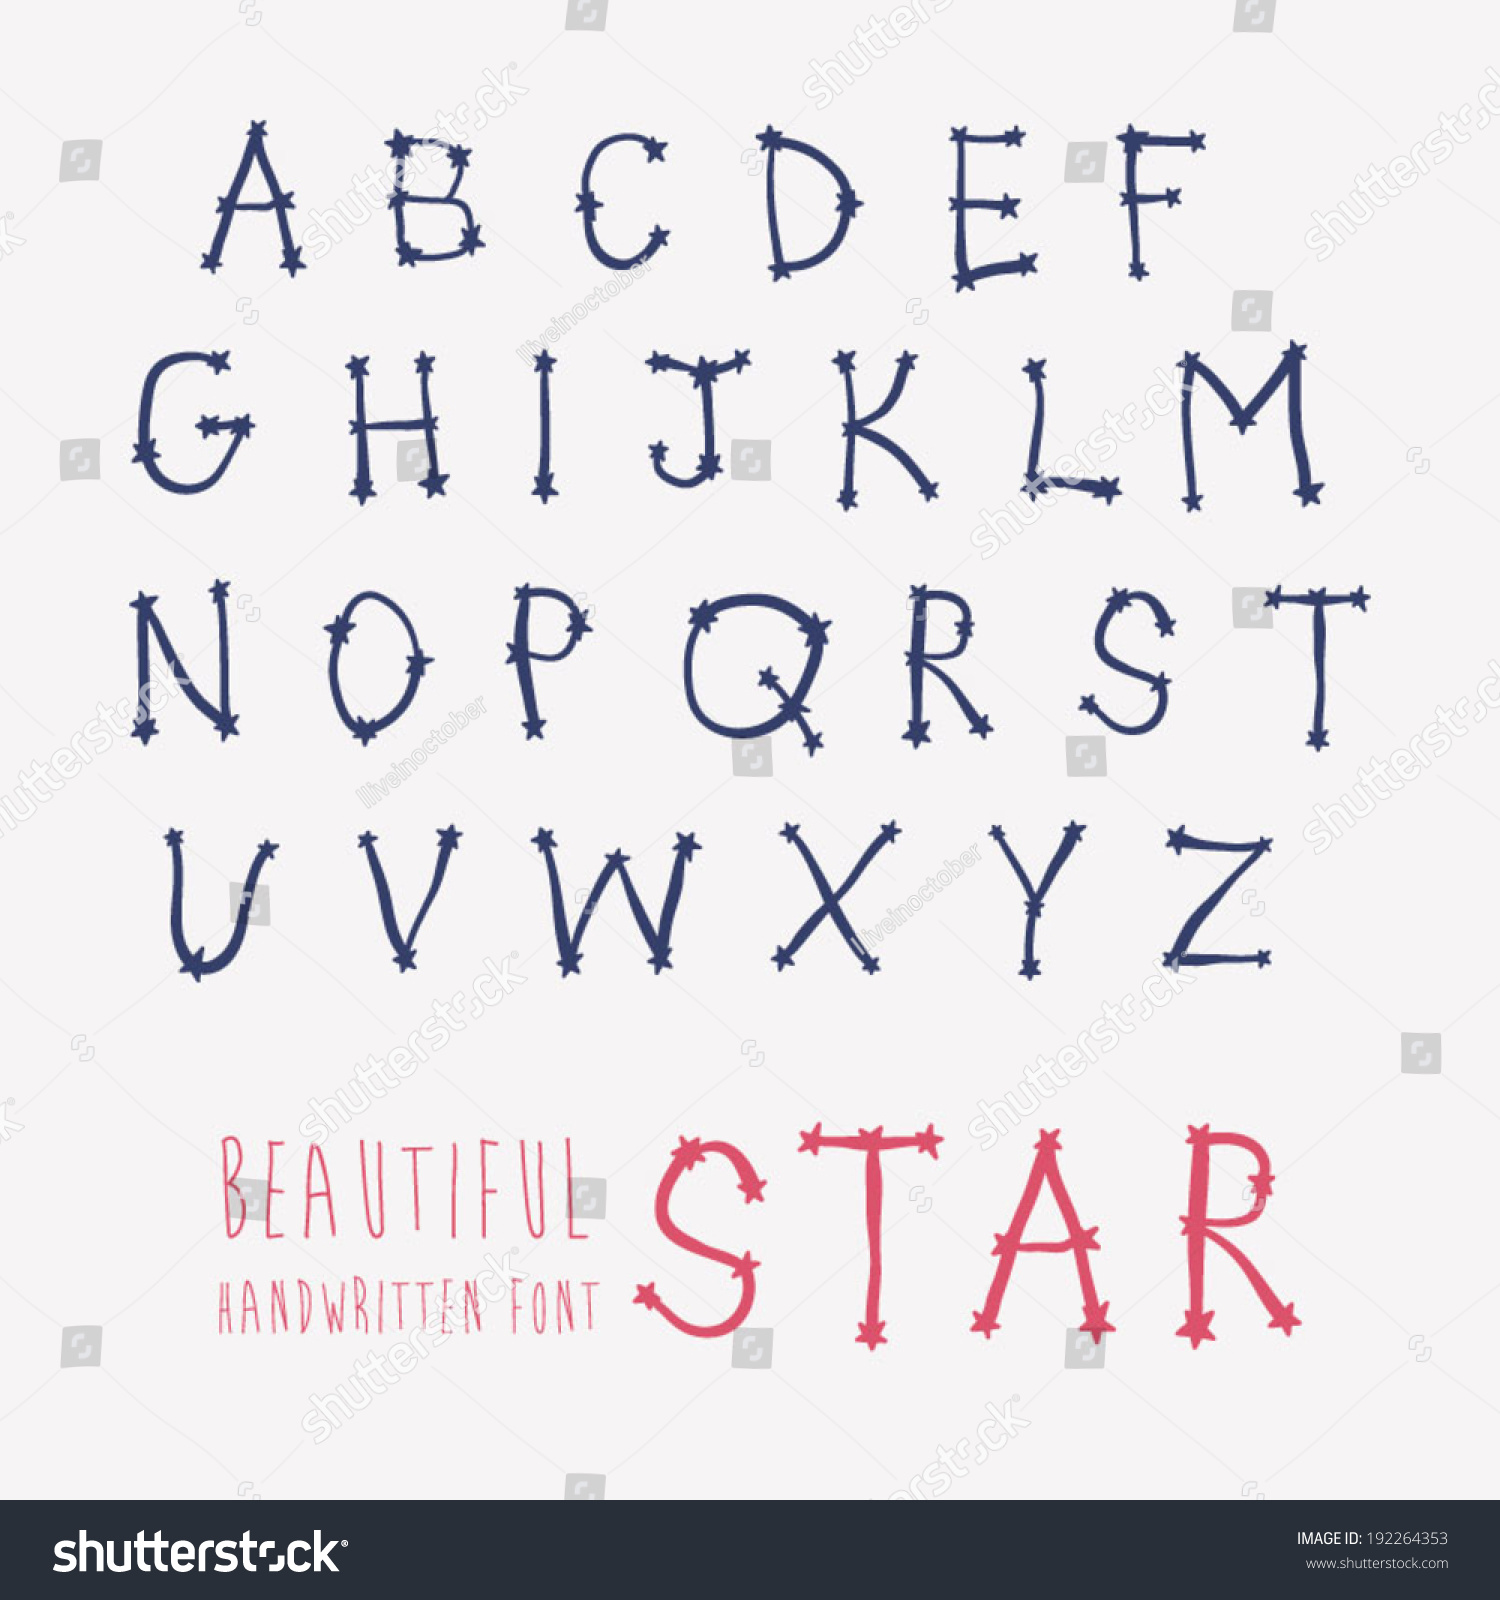 handwritten font cute hand drawn alphabet stock vector (royalty free